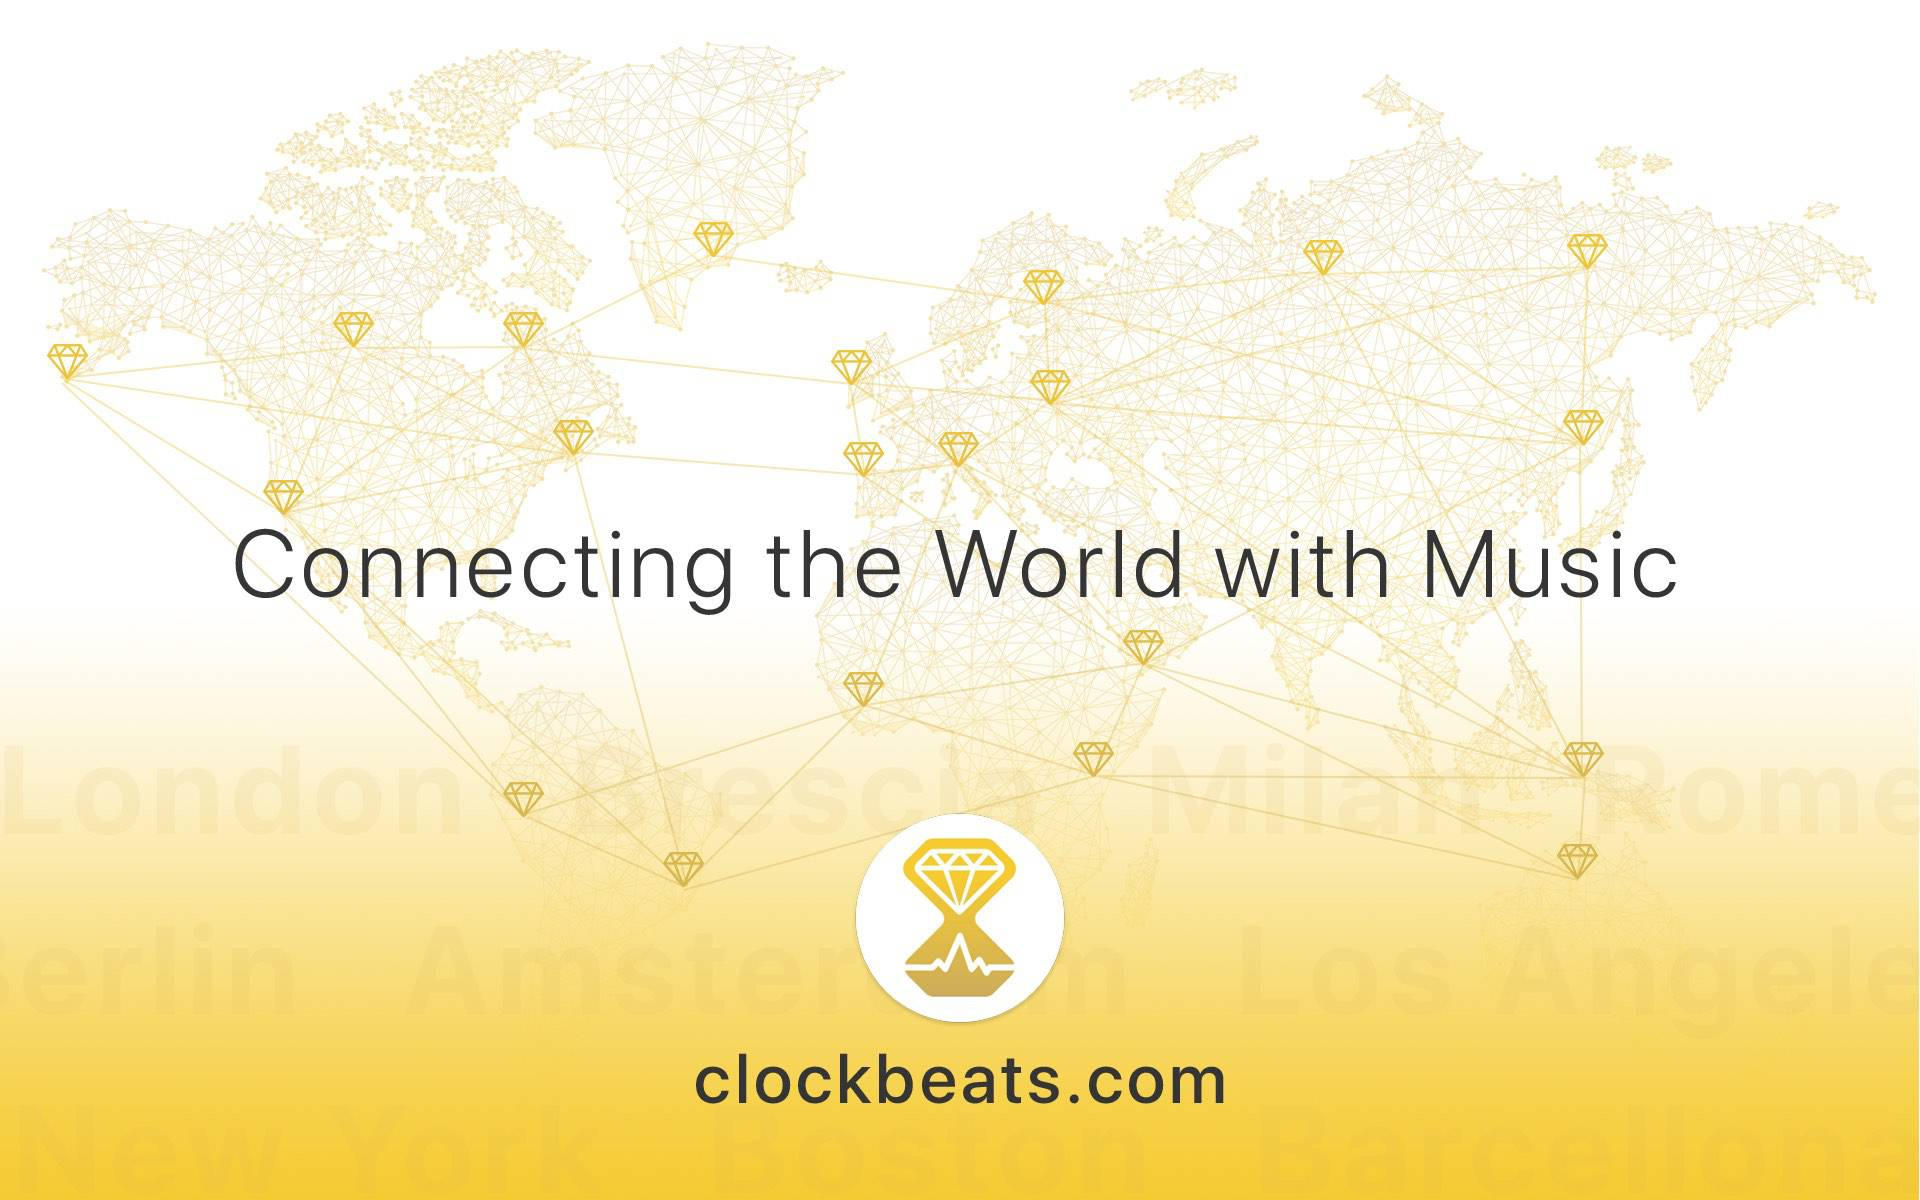 Get Started on Clockbeats